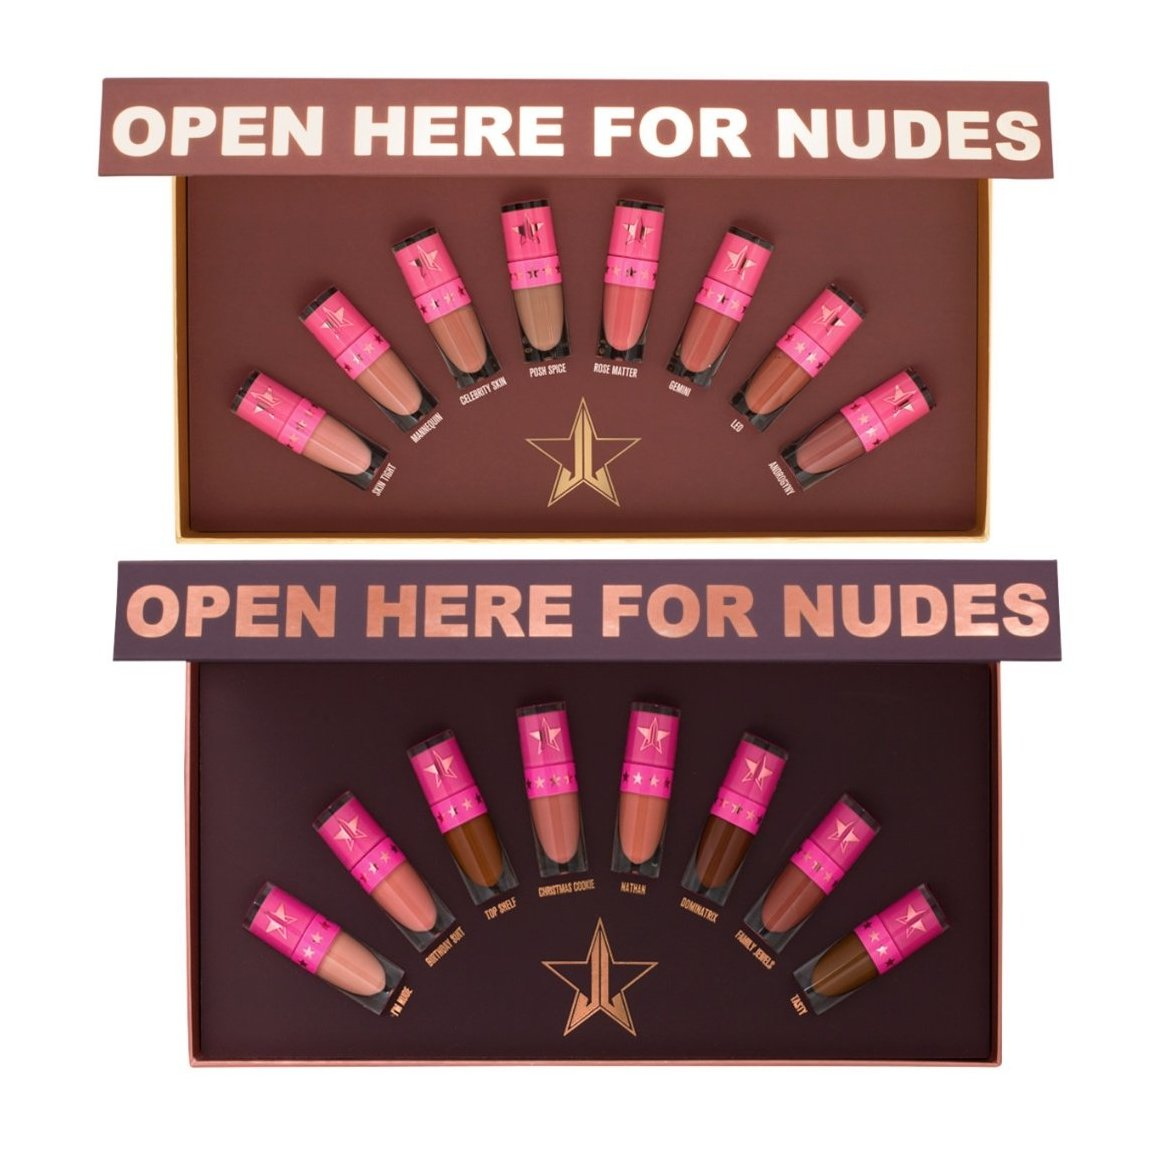 Jeffree Star Cosmetics The Mini Velour Liquid Lipsticks Nudes: Volume One & Volume Two product smear.